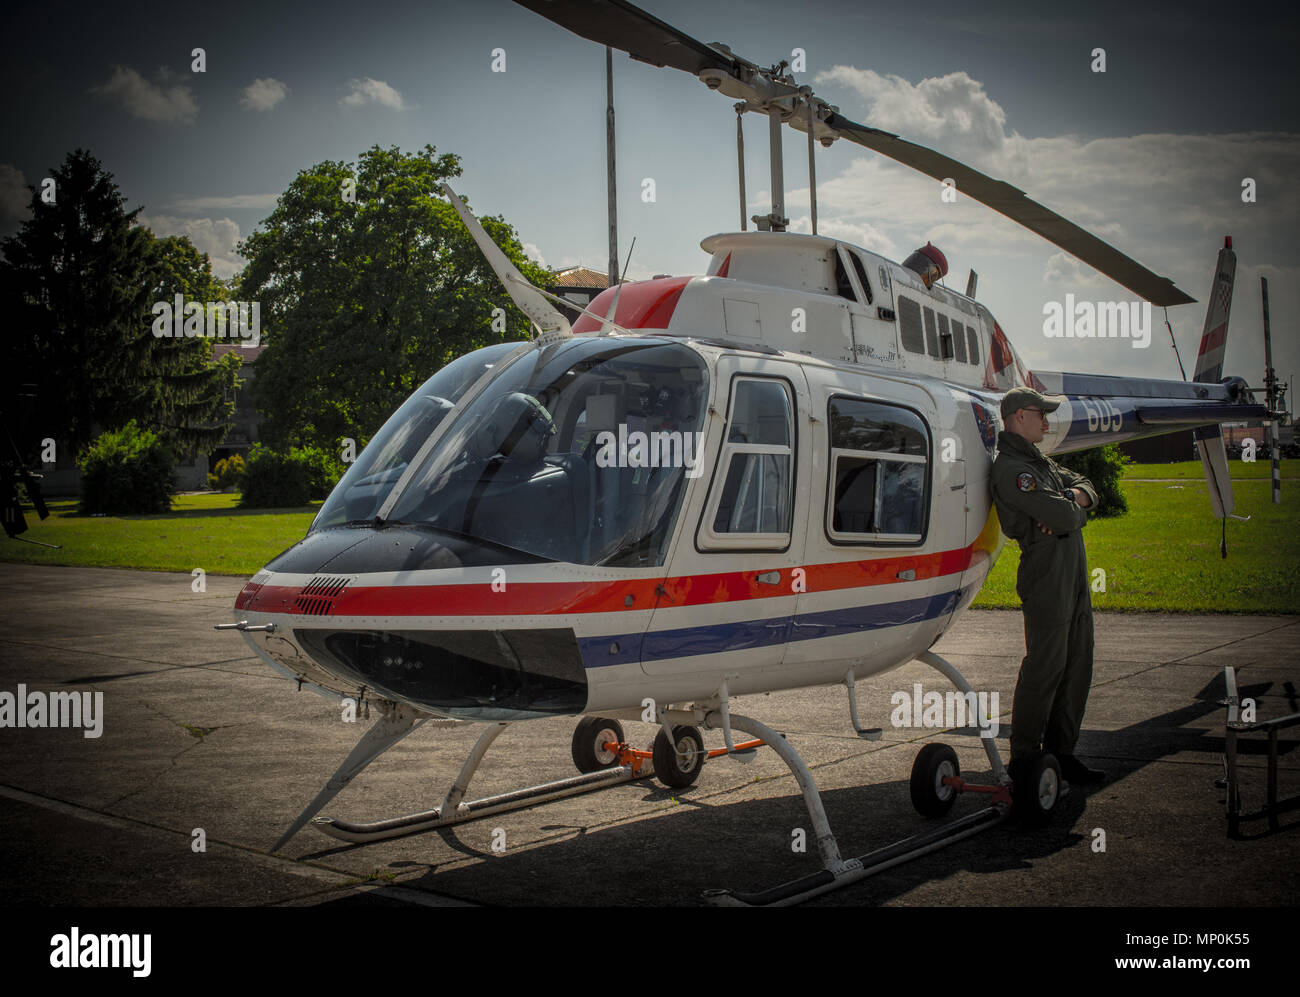 Bell-206 helicopter - Stock Image